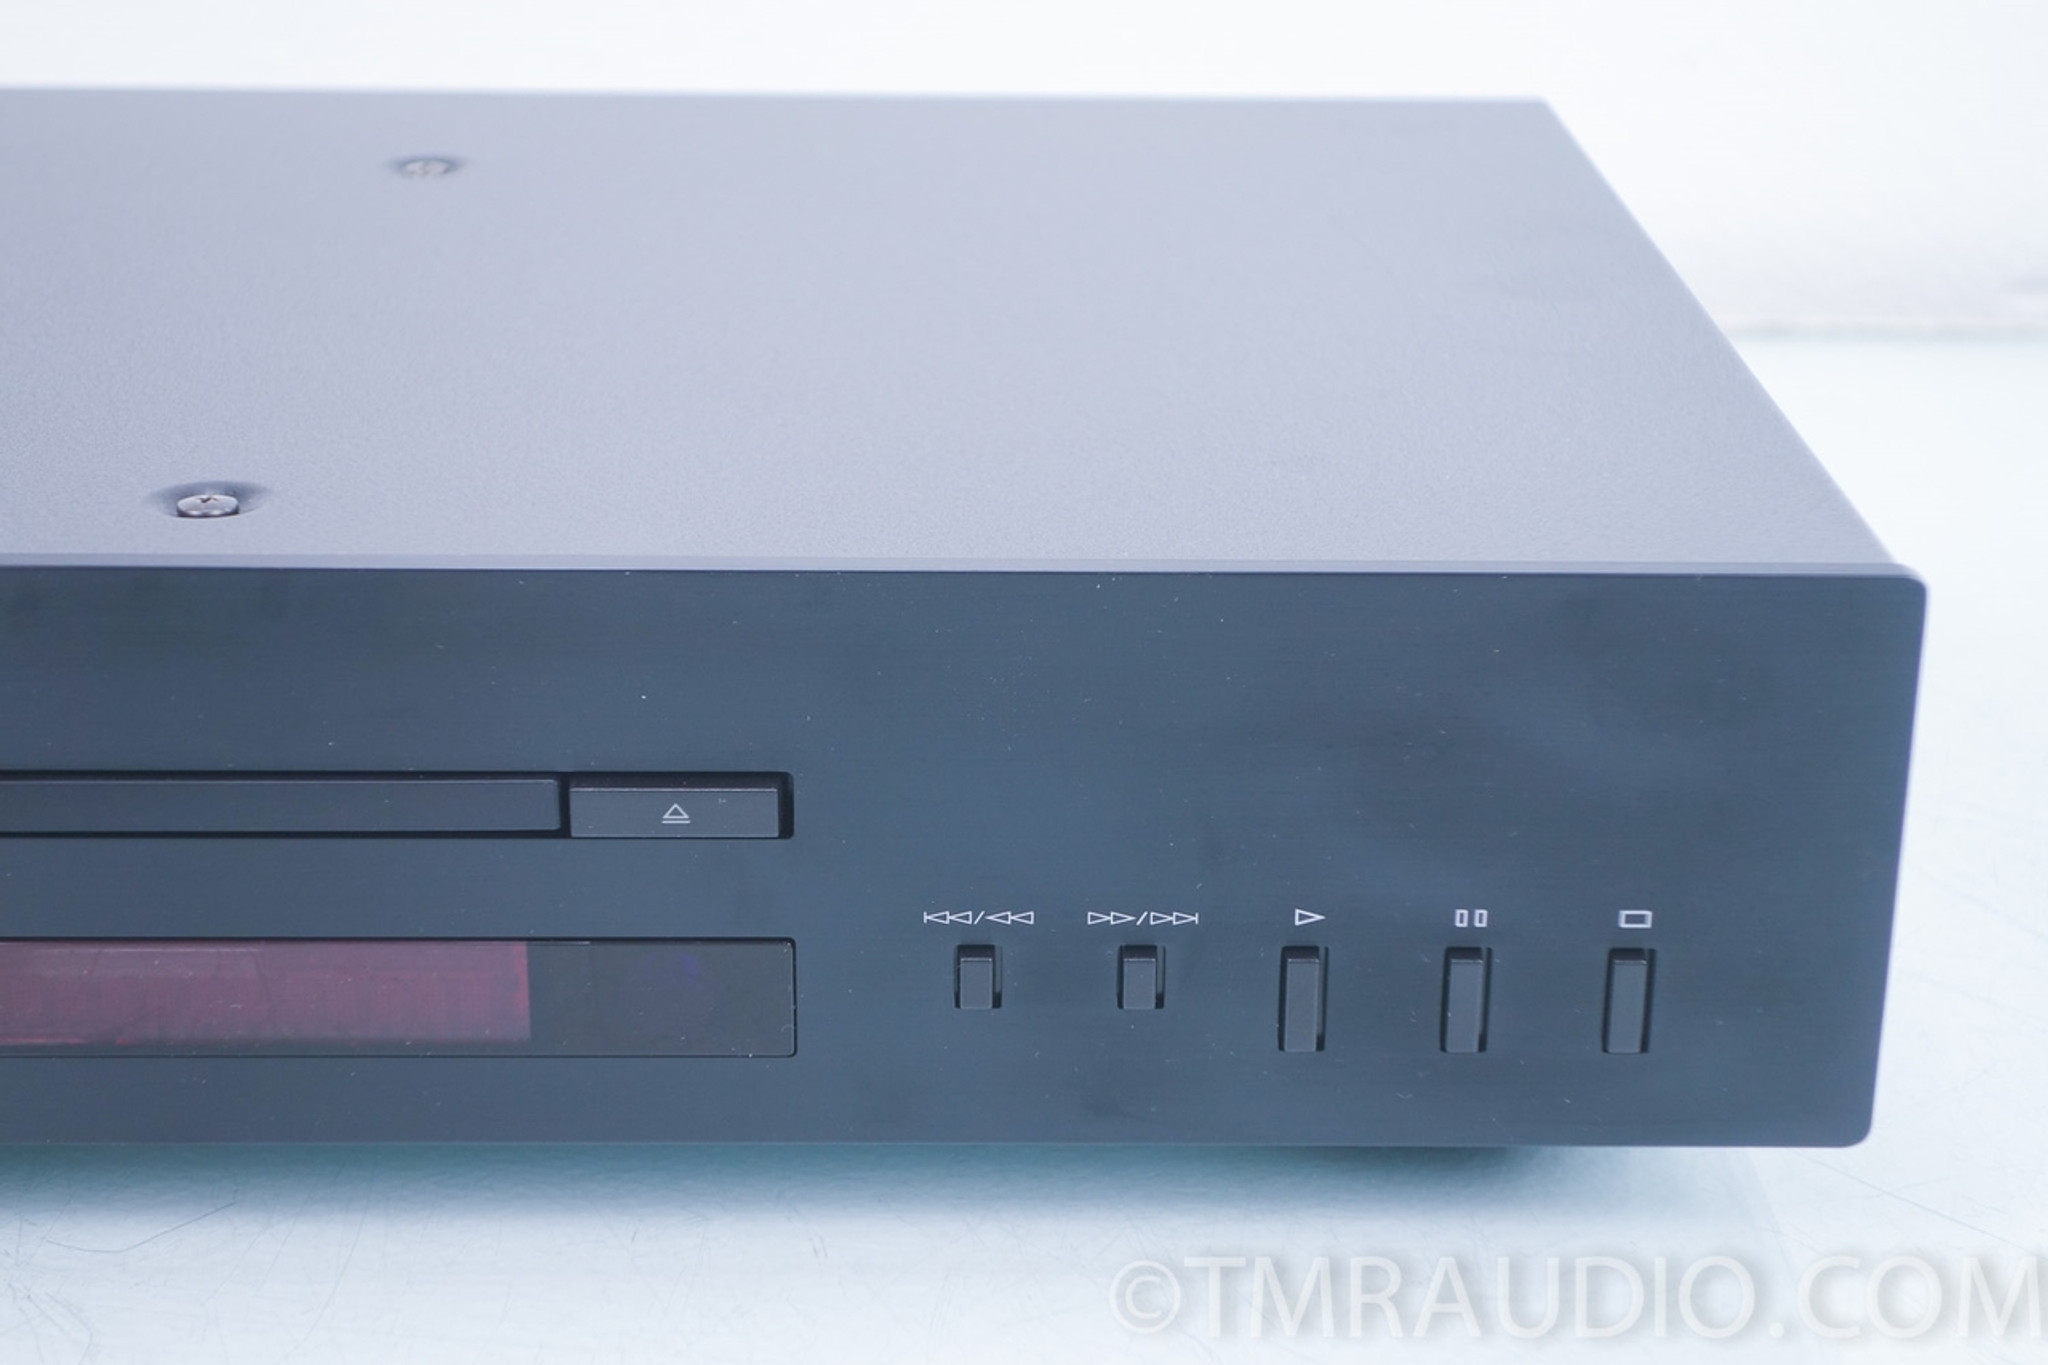 yamaha cd s700 cd player w usb in factory box 1 the. Black Bedroom Furniture Sets. Home Design Ideas